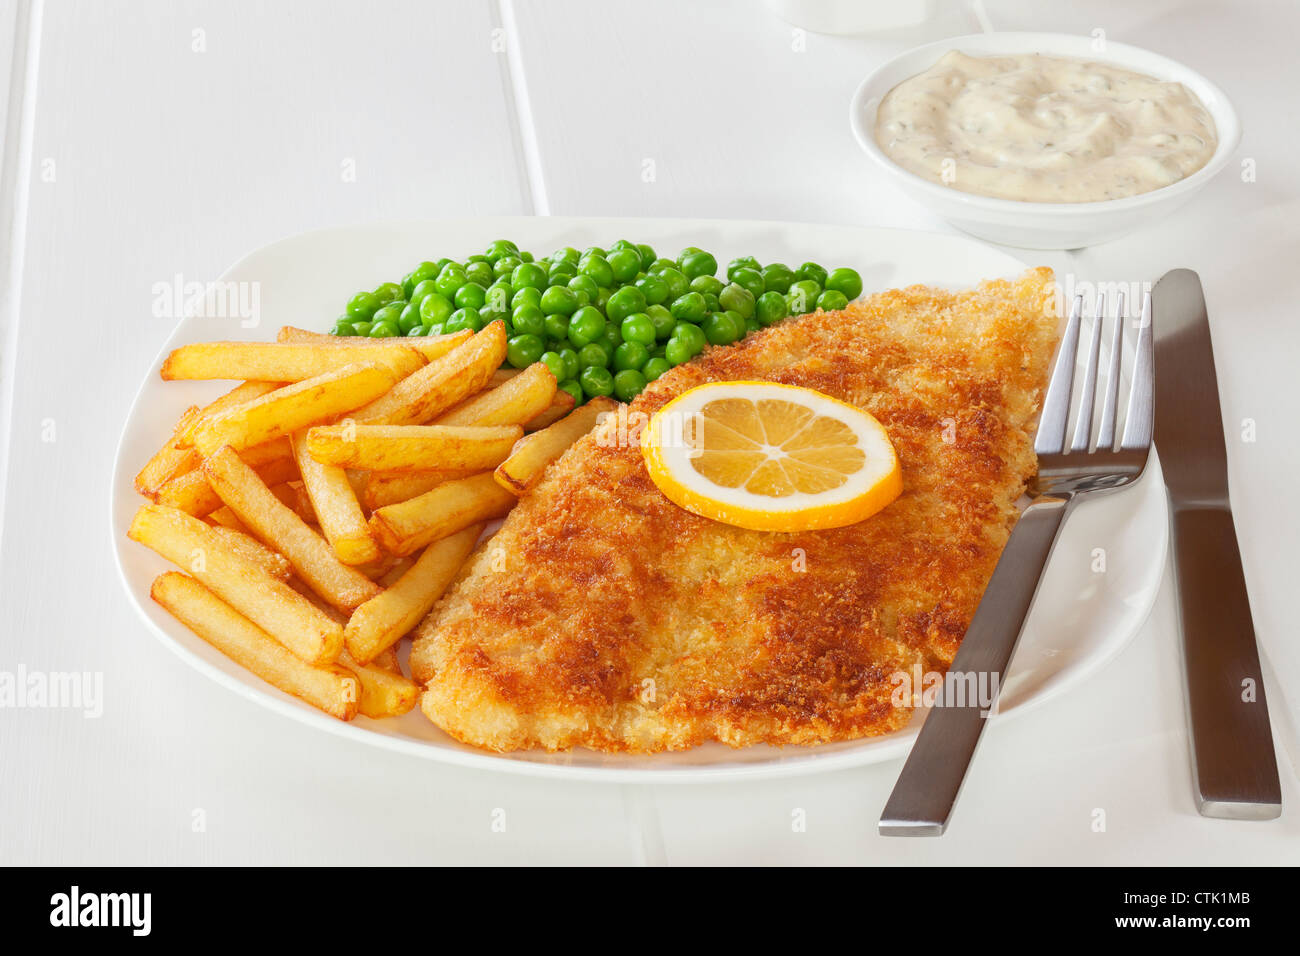 Crumbed Fish with Chips, Peas and Tartare Sauce - Stock Image